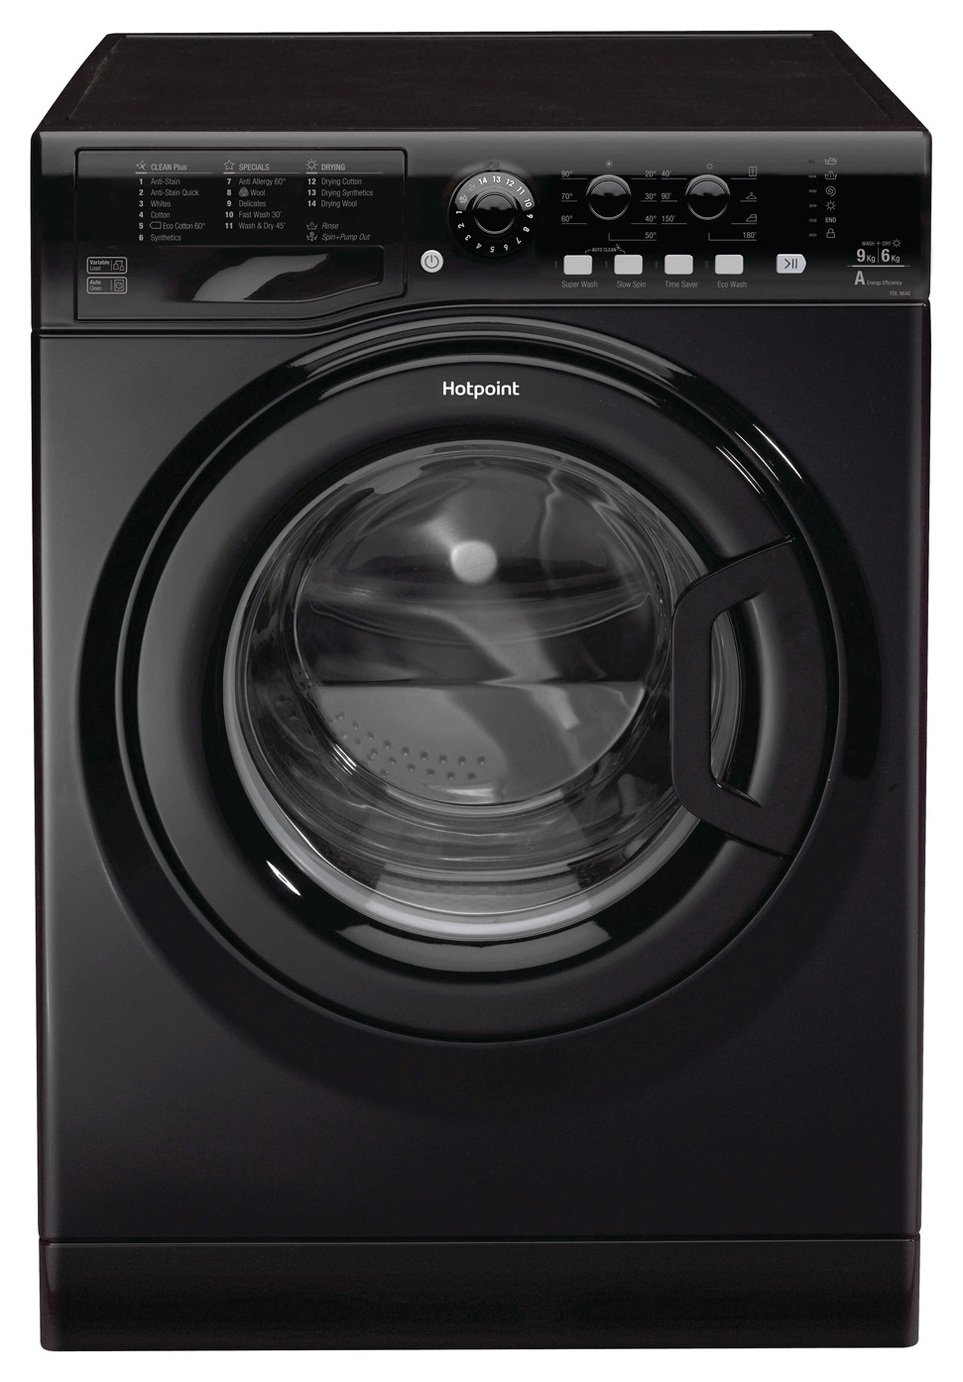 Hotpoint FDL9640K 9KG/6KG Washer Dryer - Black